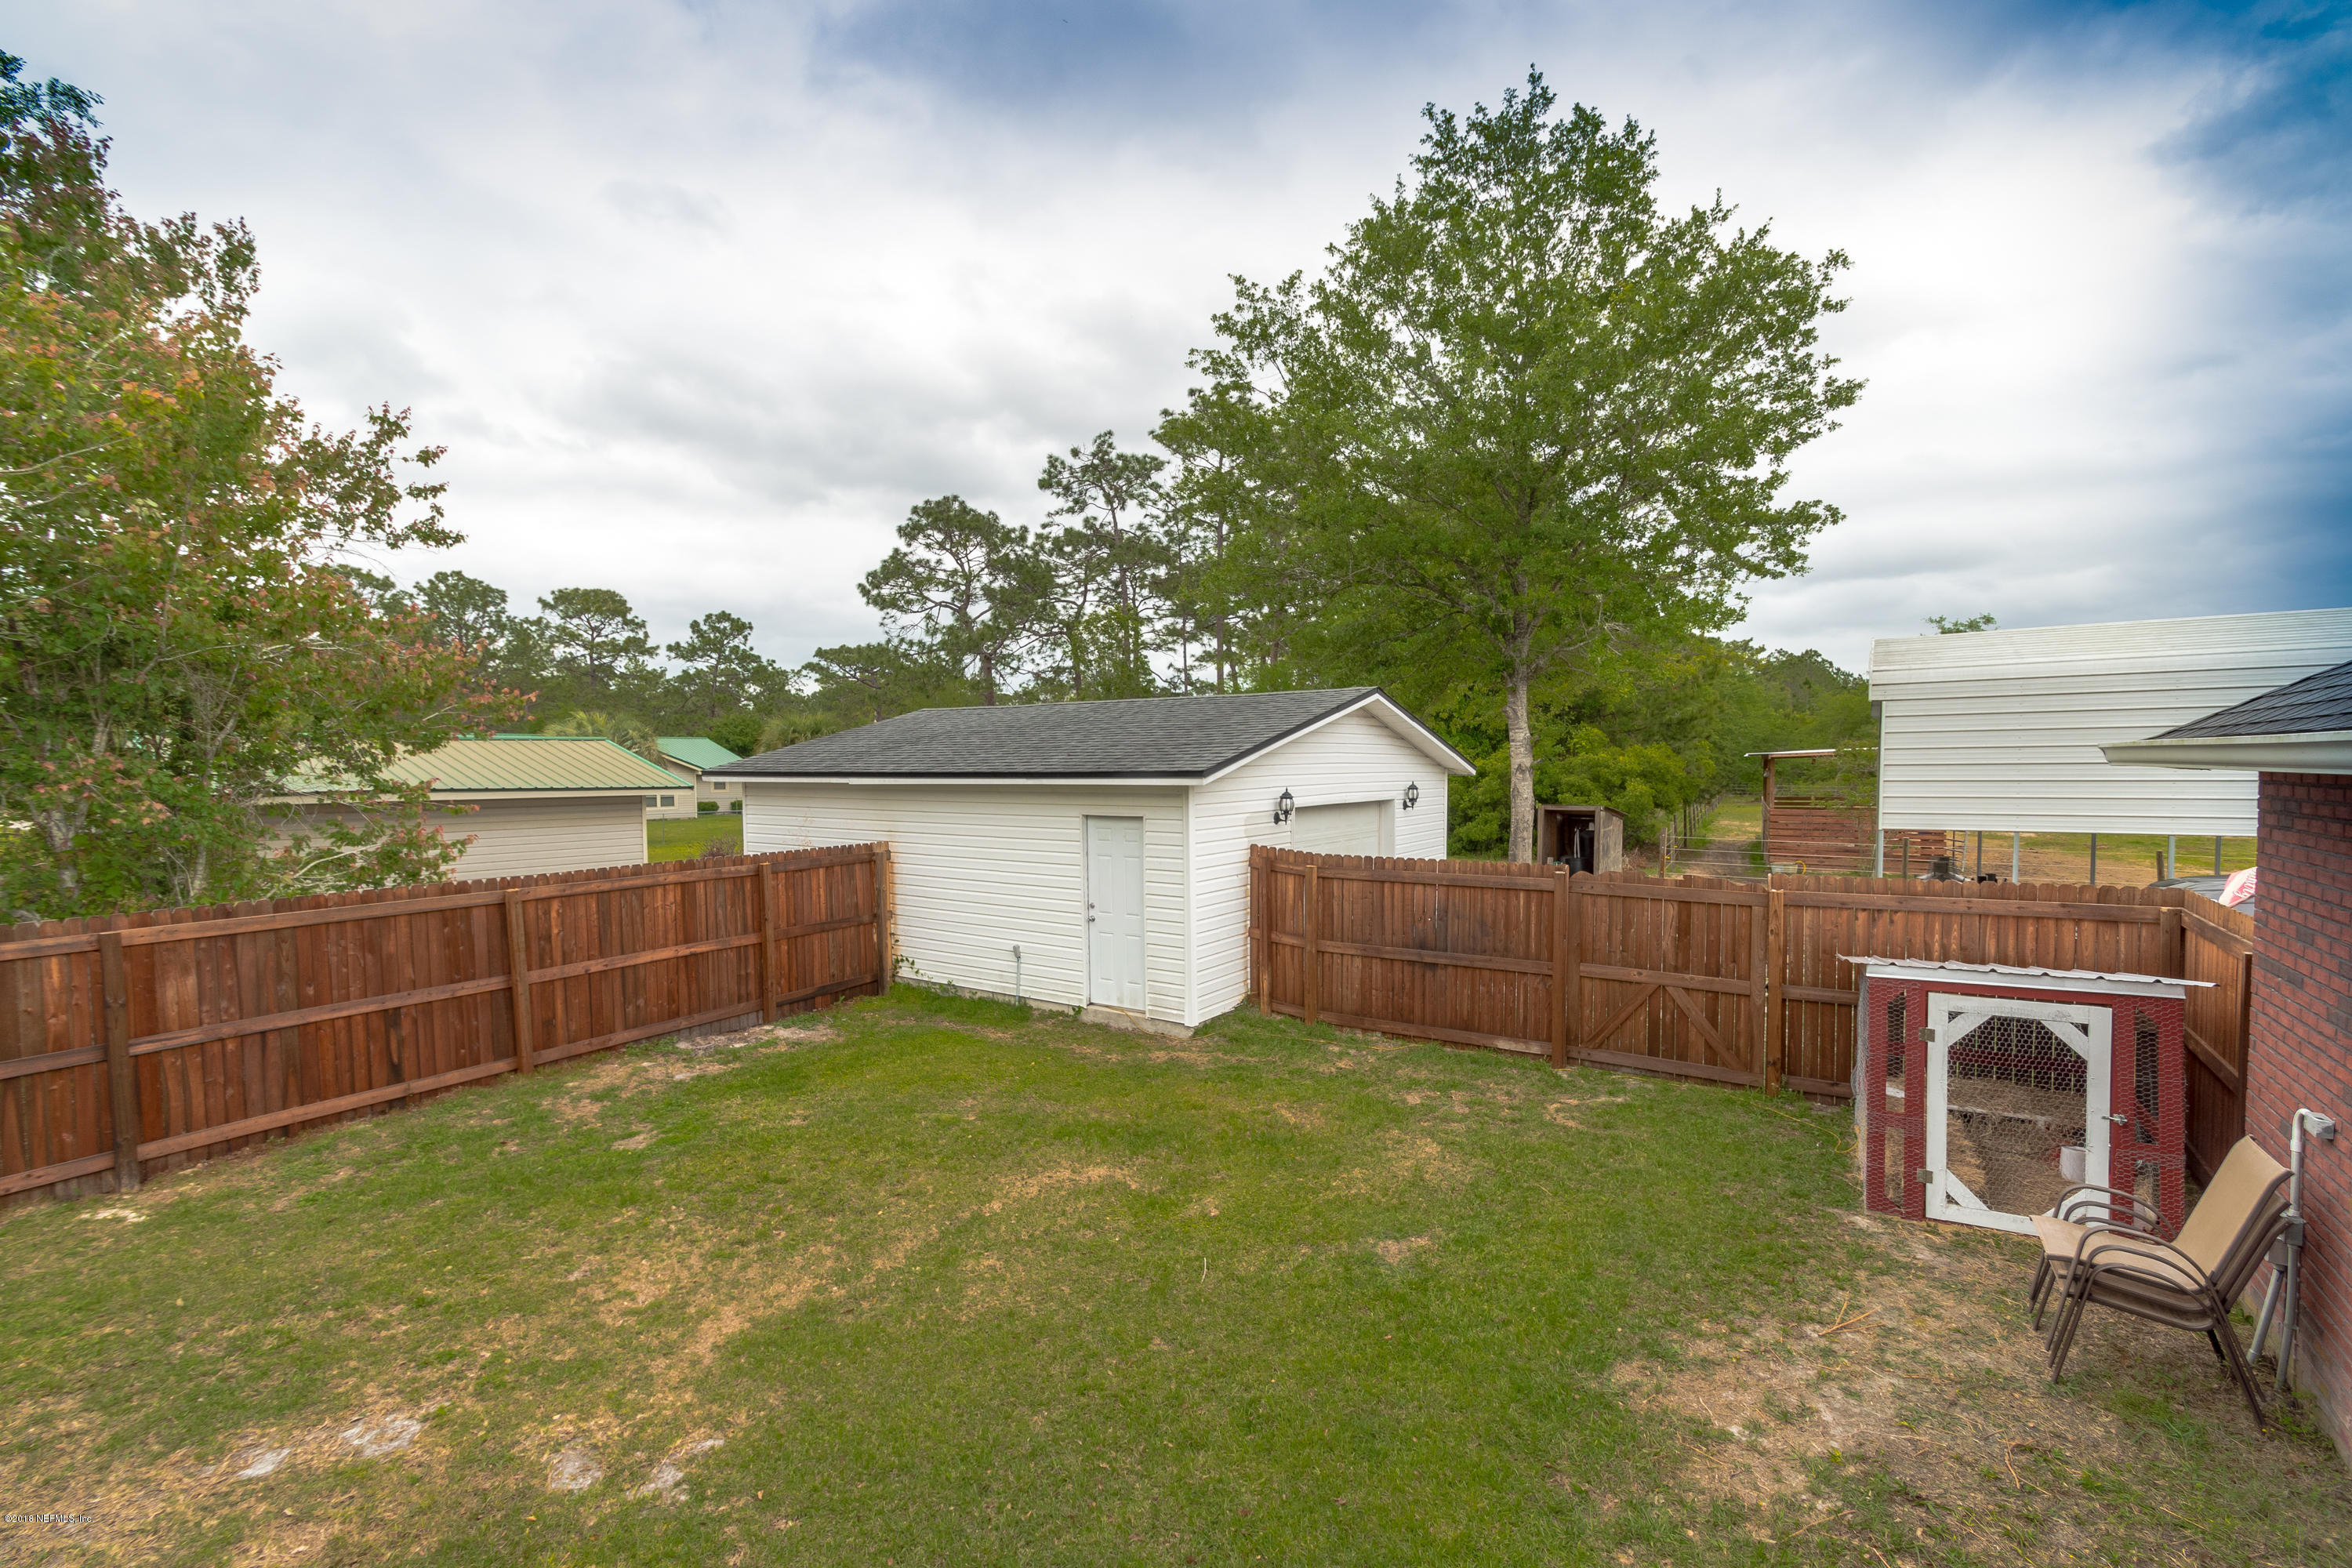 3673 PENELOPE, MACCLENNY, FLORIDA 32063, 4 Bedrooms Bedrooms, ,2 BathroomsBathrooms,Residential - single family,For sale,PENELOPE,946576